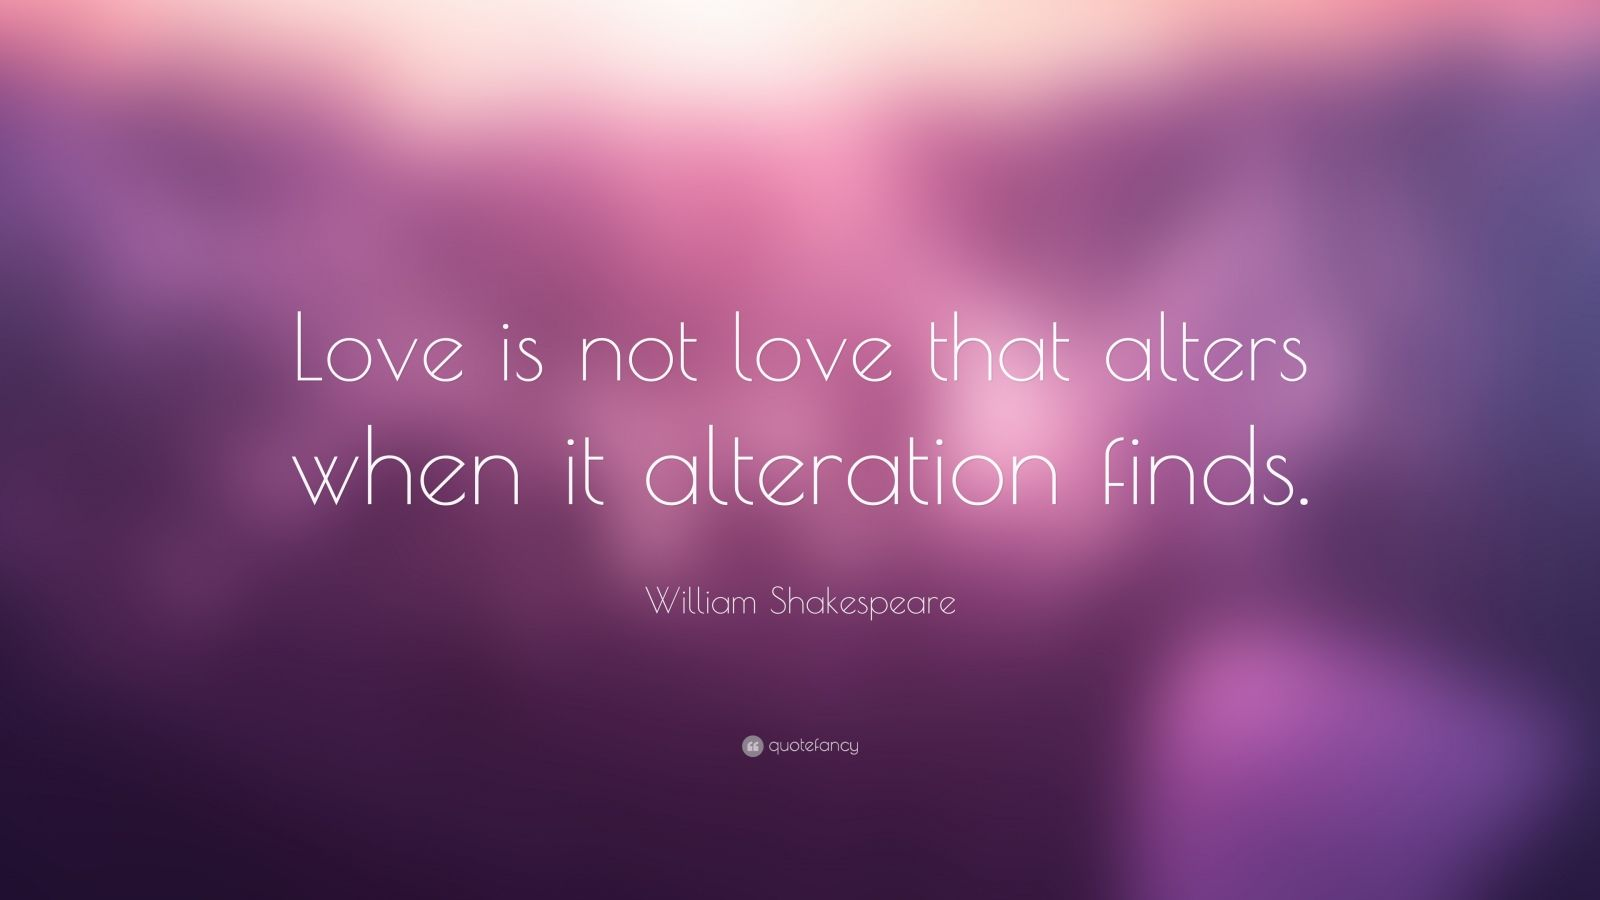 love is not love which alters when it alteration finds: